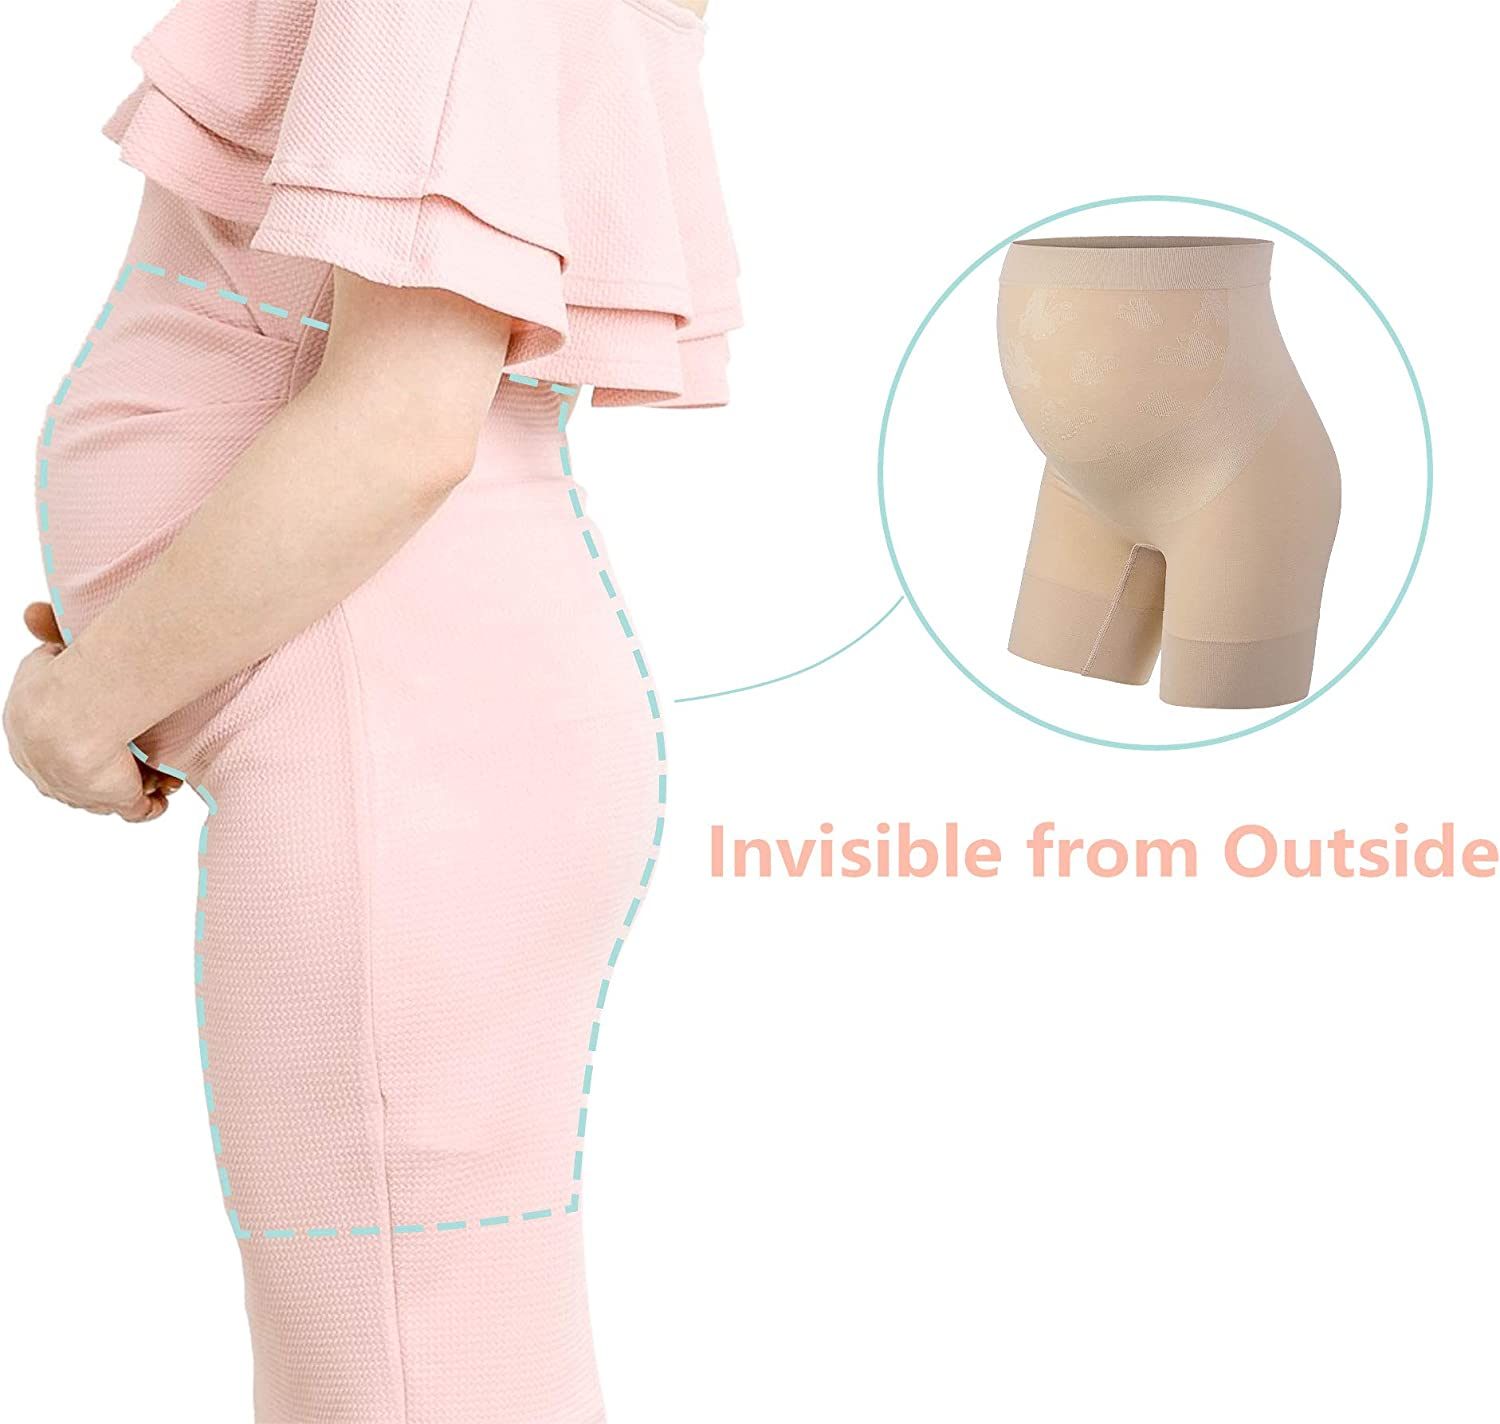 Baby Bump Premium Maternity Shapewear High Waisted Mid Thigh Pregnancy Underwear Prevent Chaffing Soft Adominal Support At Amazon Women S Clothing Store